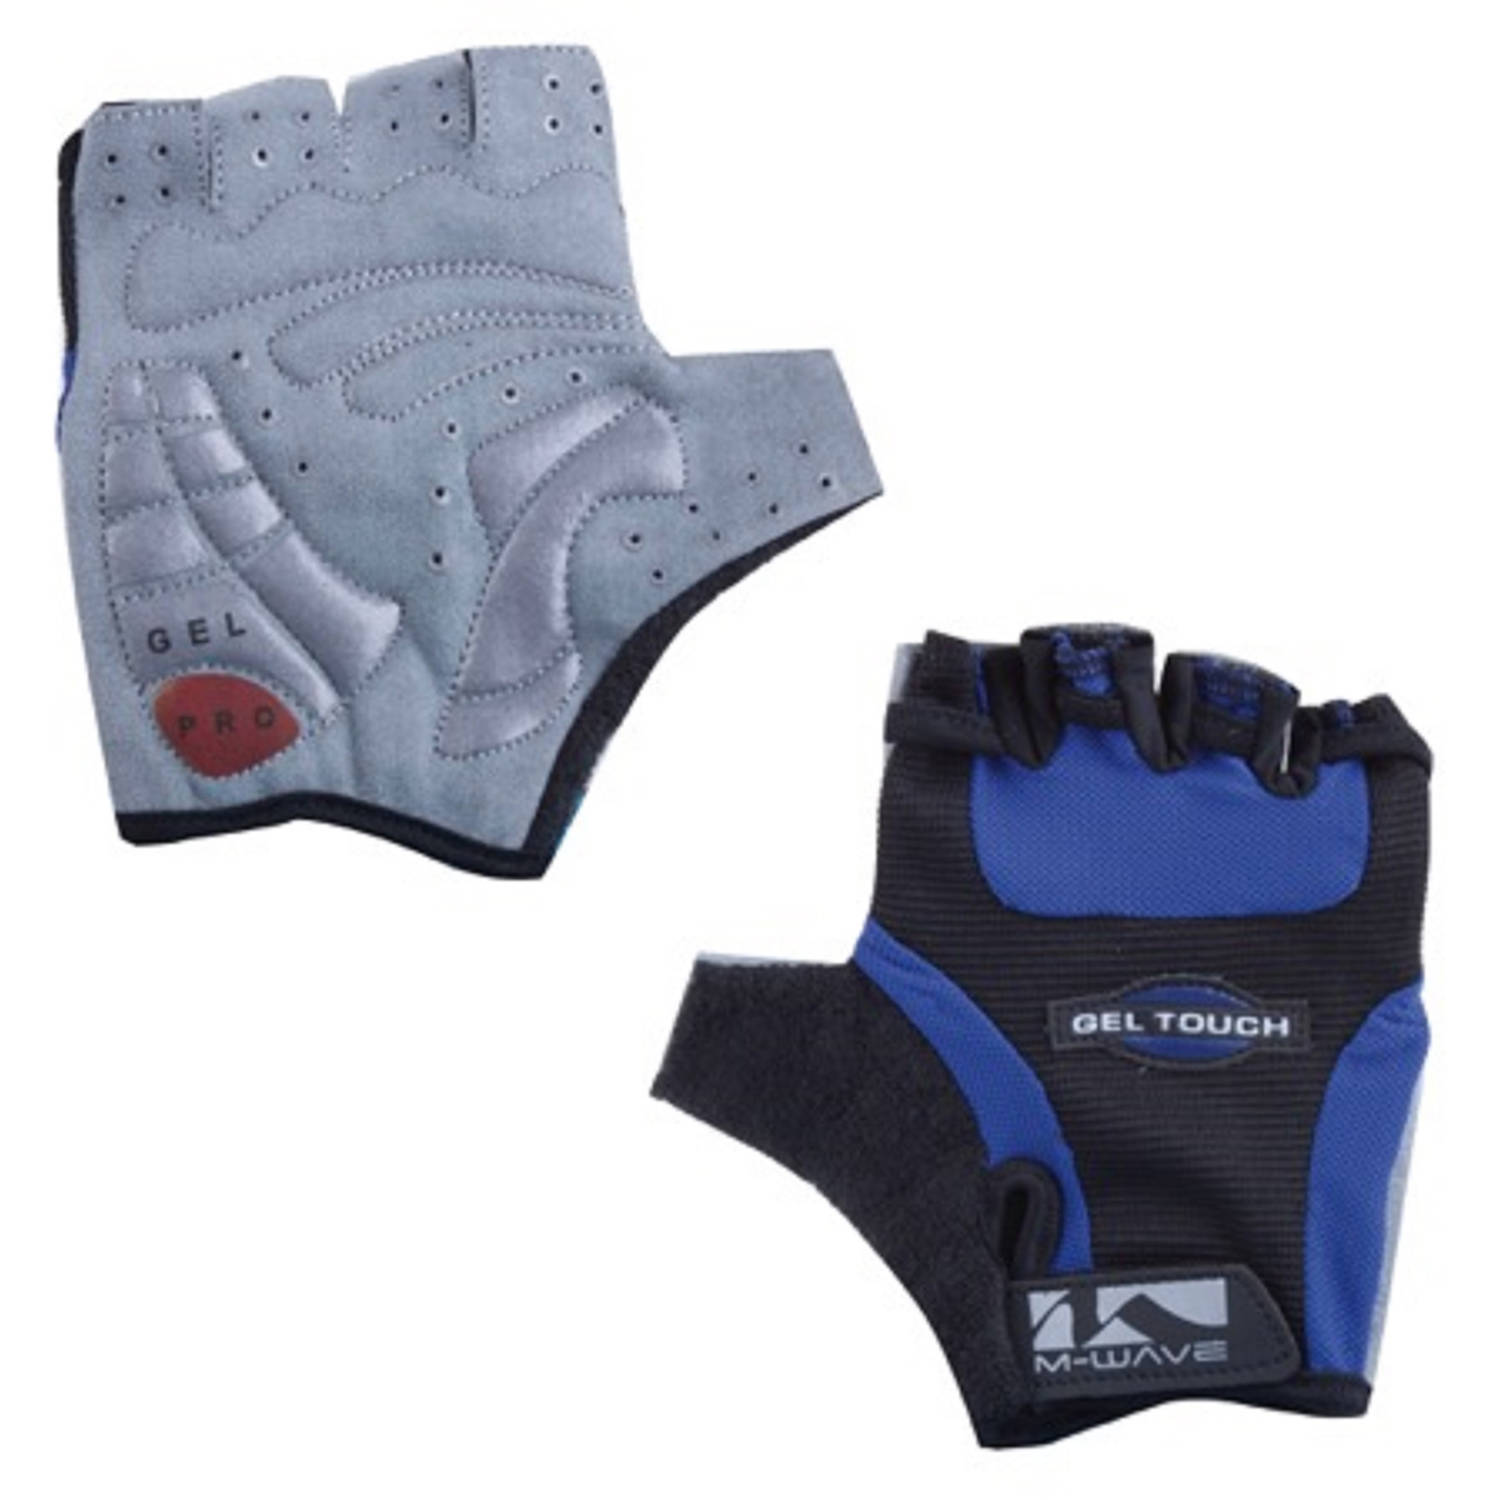 Ventura Gel-Tight Gloves, Medium